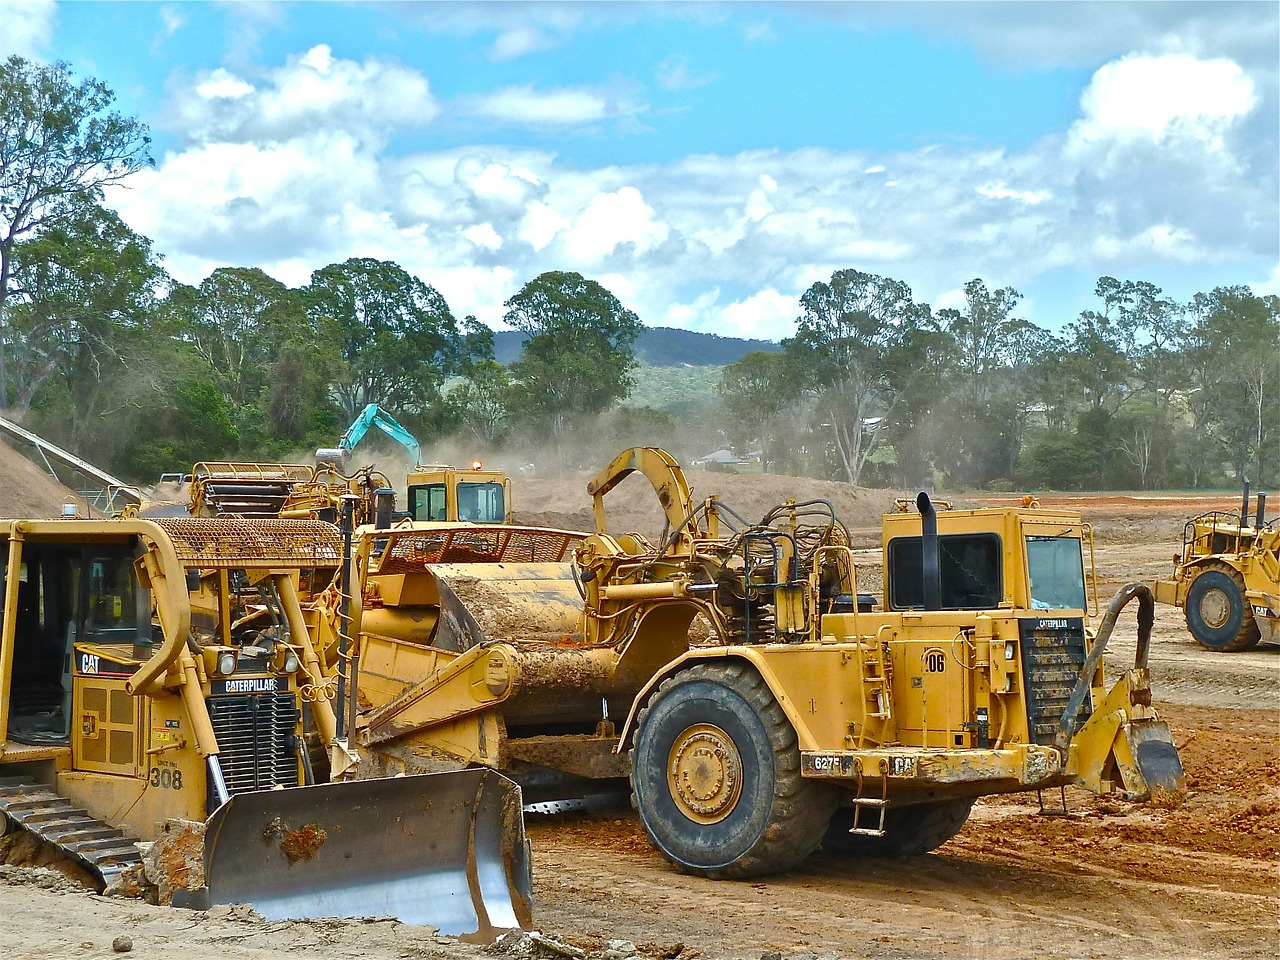 A Caterpillar bulldozer in forefront.